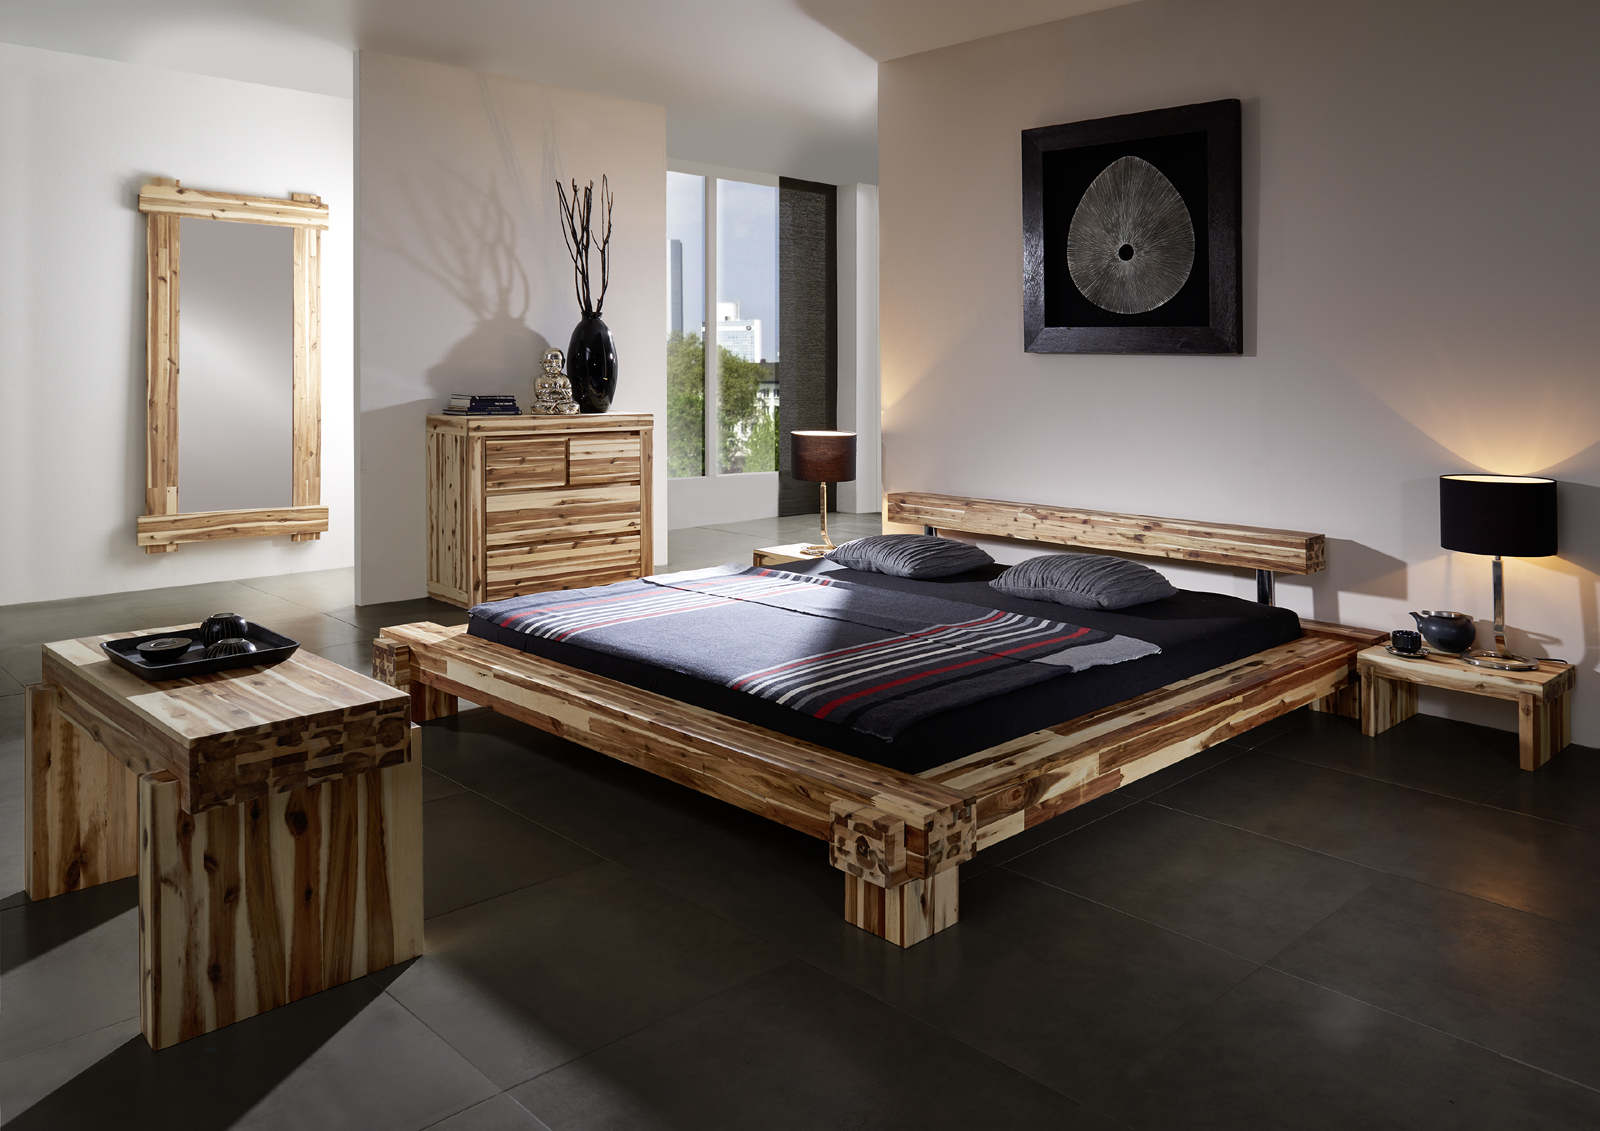 sam massives holzbett akazie 140 x 200 cm casanova auf lager. Black Bedroom Furniture Sets. Home Design Ideas